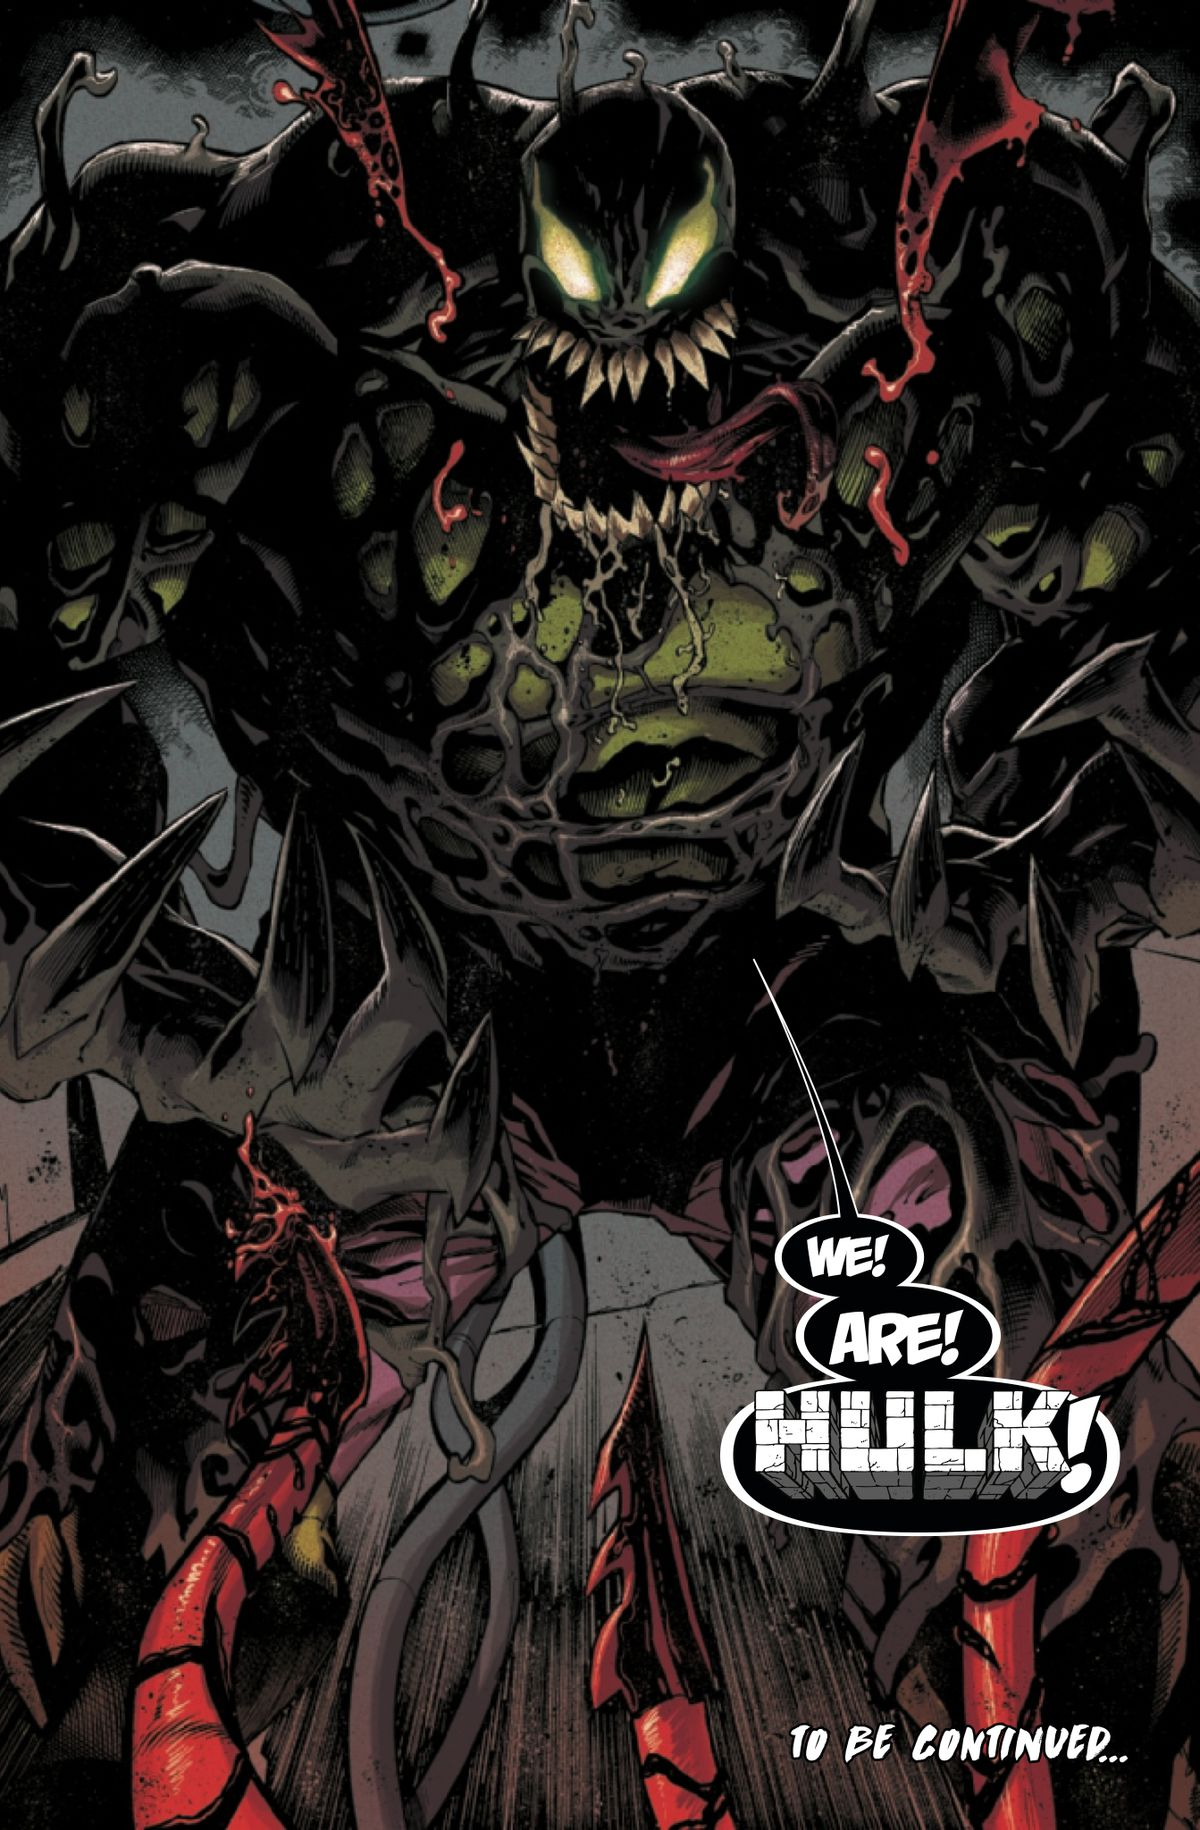 Bruce Banner/The Hulk, after merging with the Venom symbiote, in Absolute Carnage #3, Marvel Comics (2019).